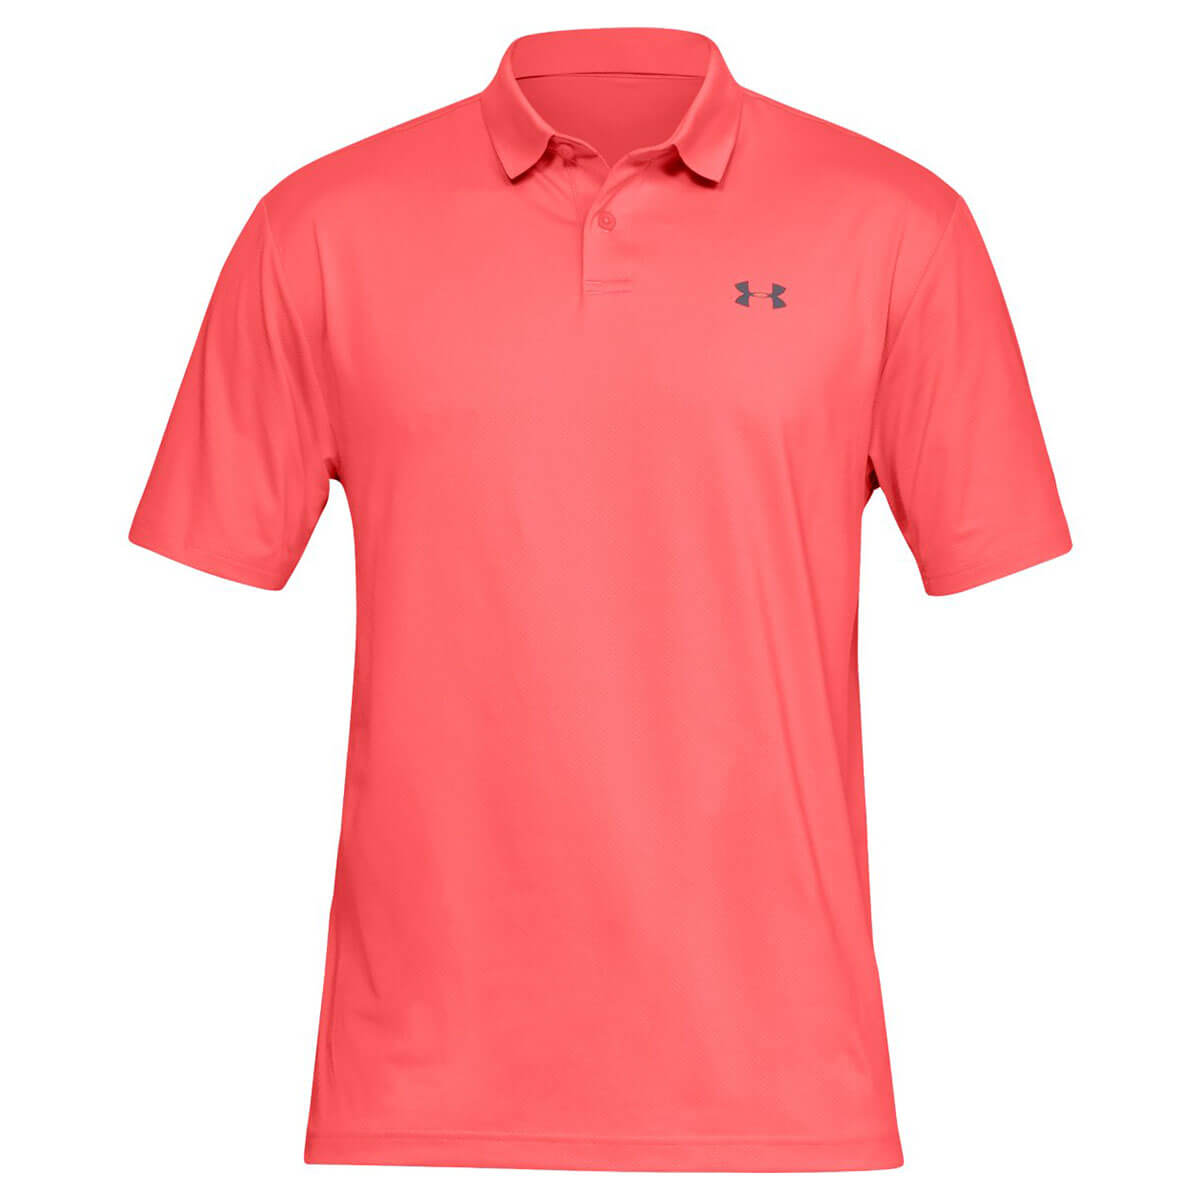 Under-Armour-Mens-2019-Performance-2-0-Stretch-Durable-Smooth-Golf-Polo-Shirt thumbnail 16